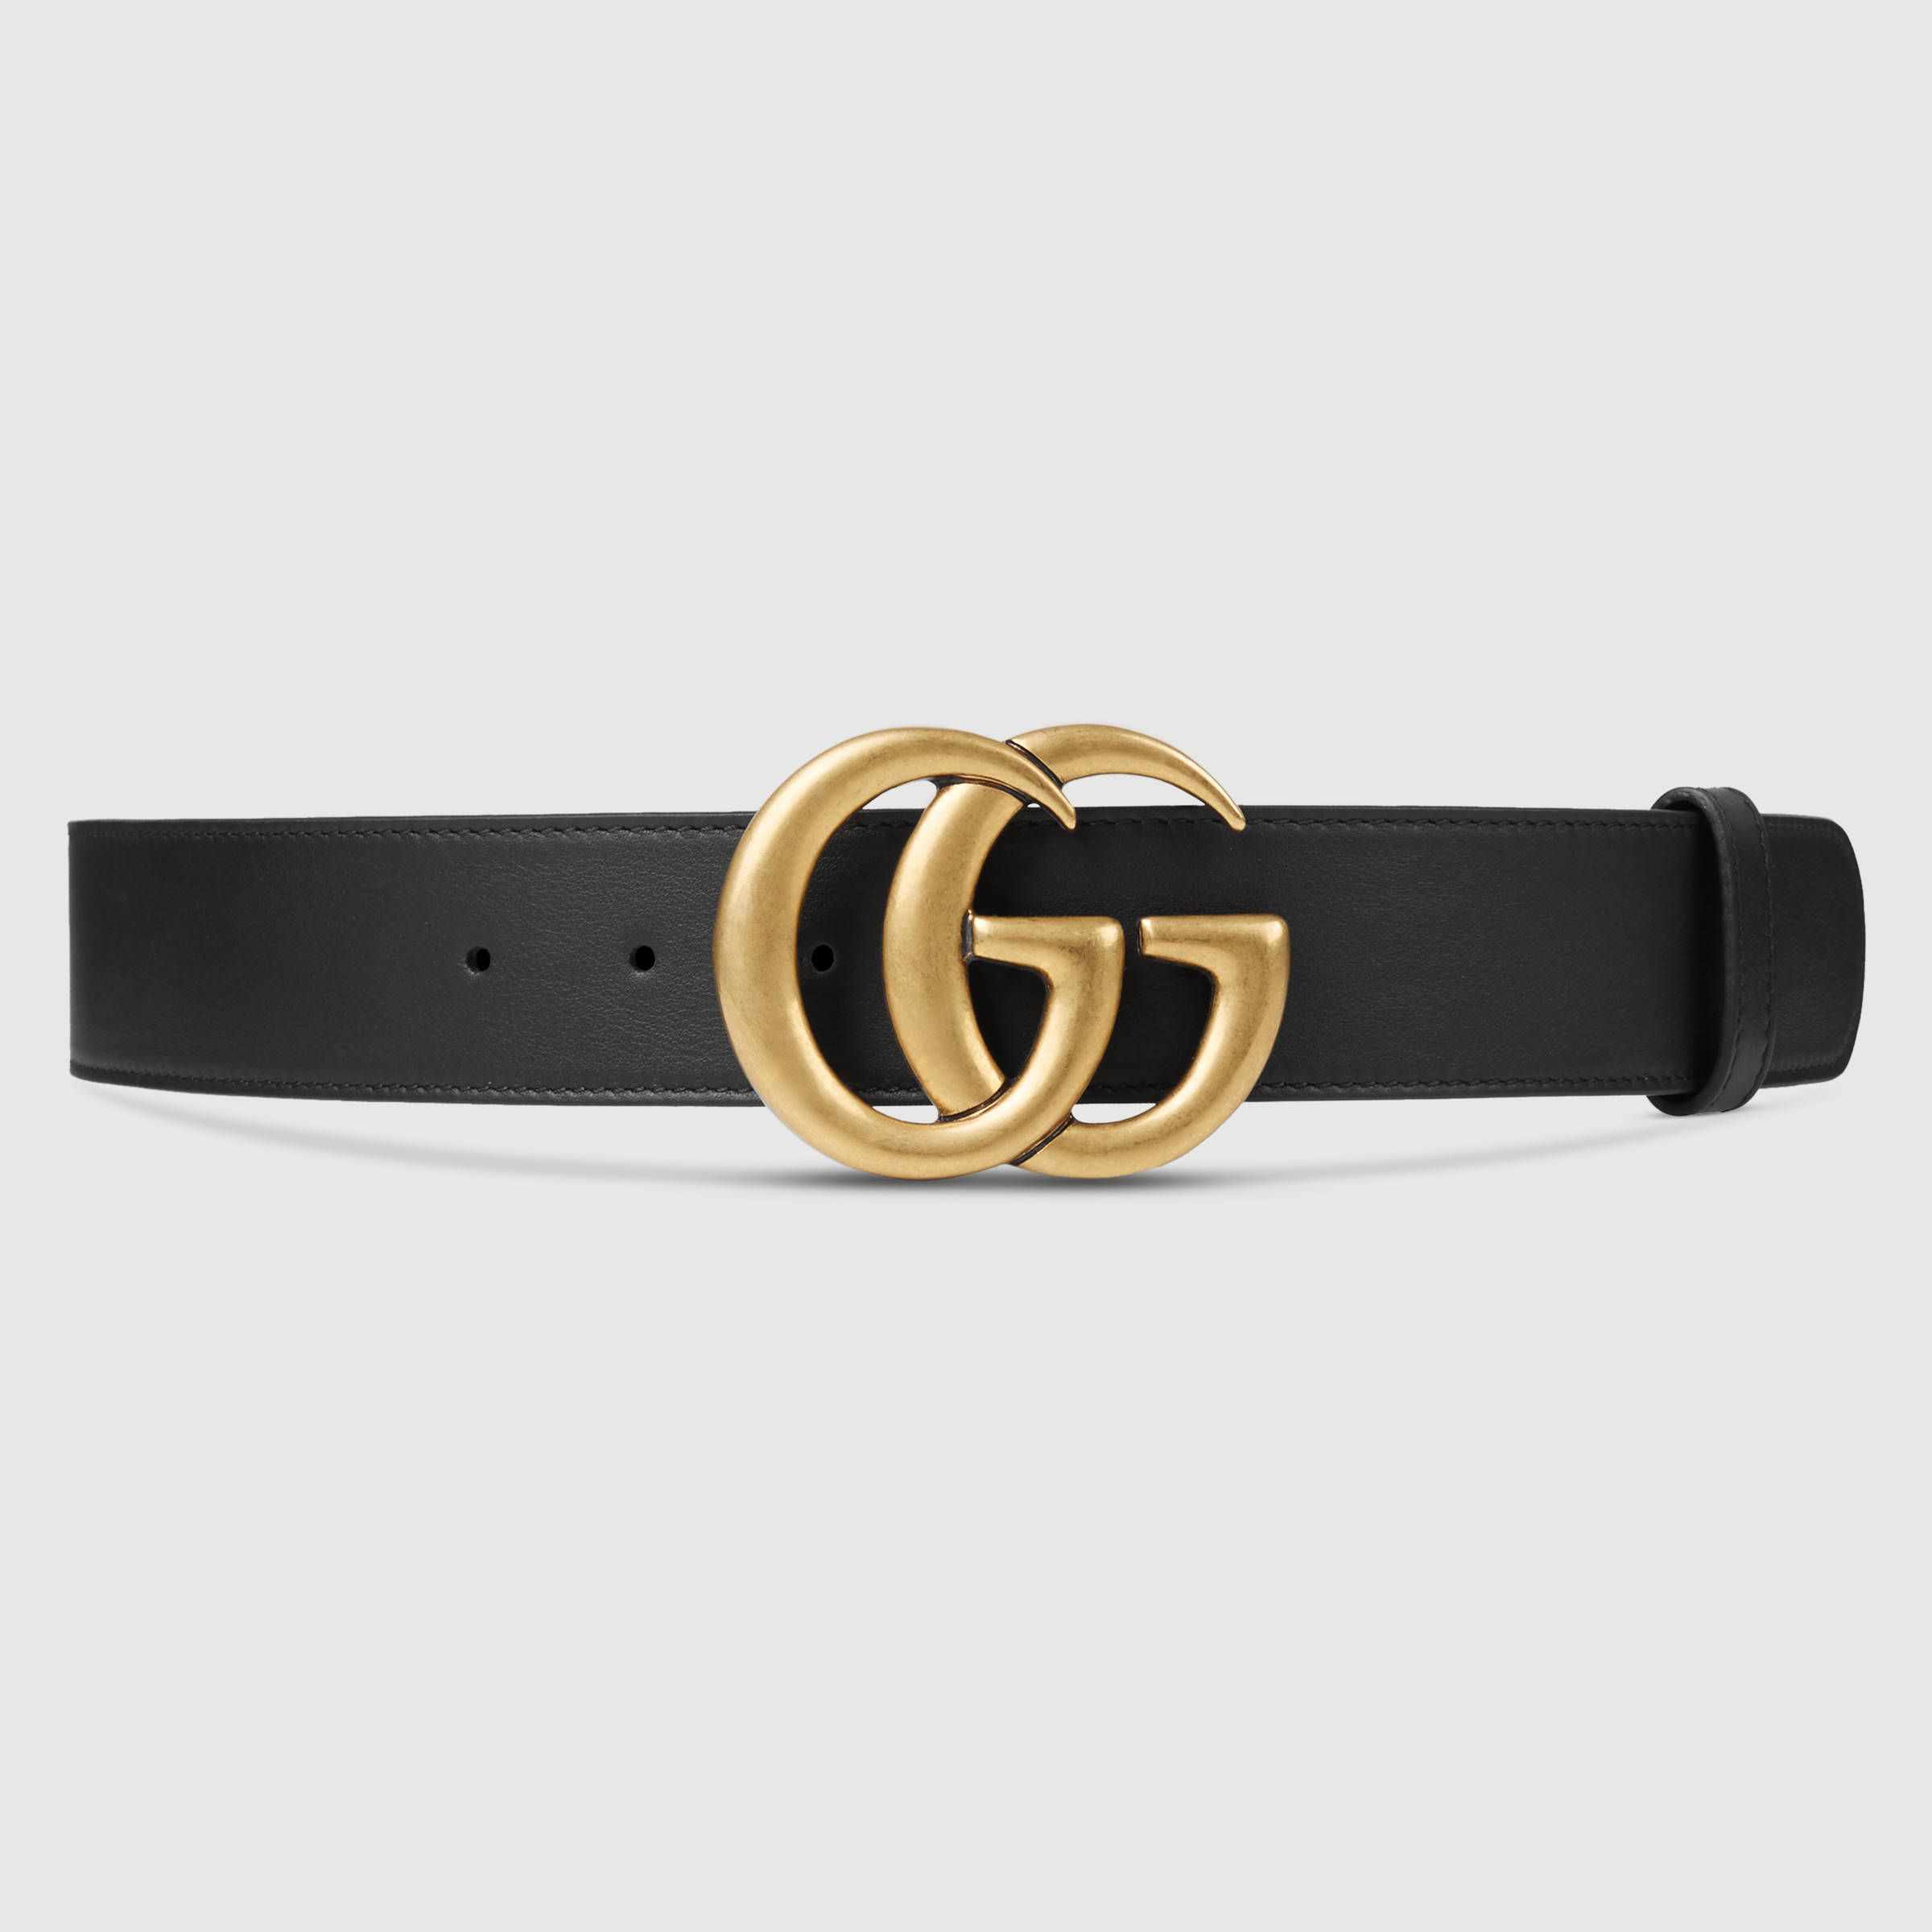 bcf33c324 Gucci Women - Gucci Black Leather belt with double G buckle - $420.00